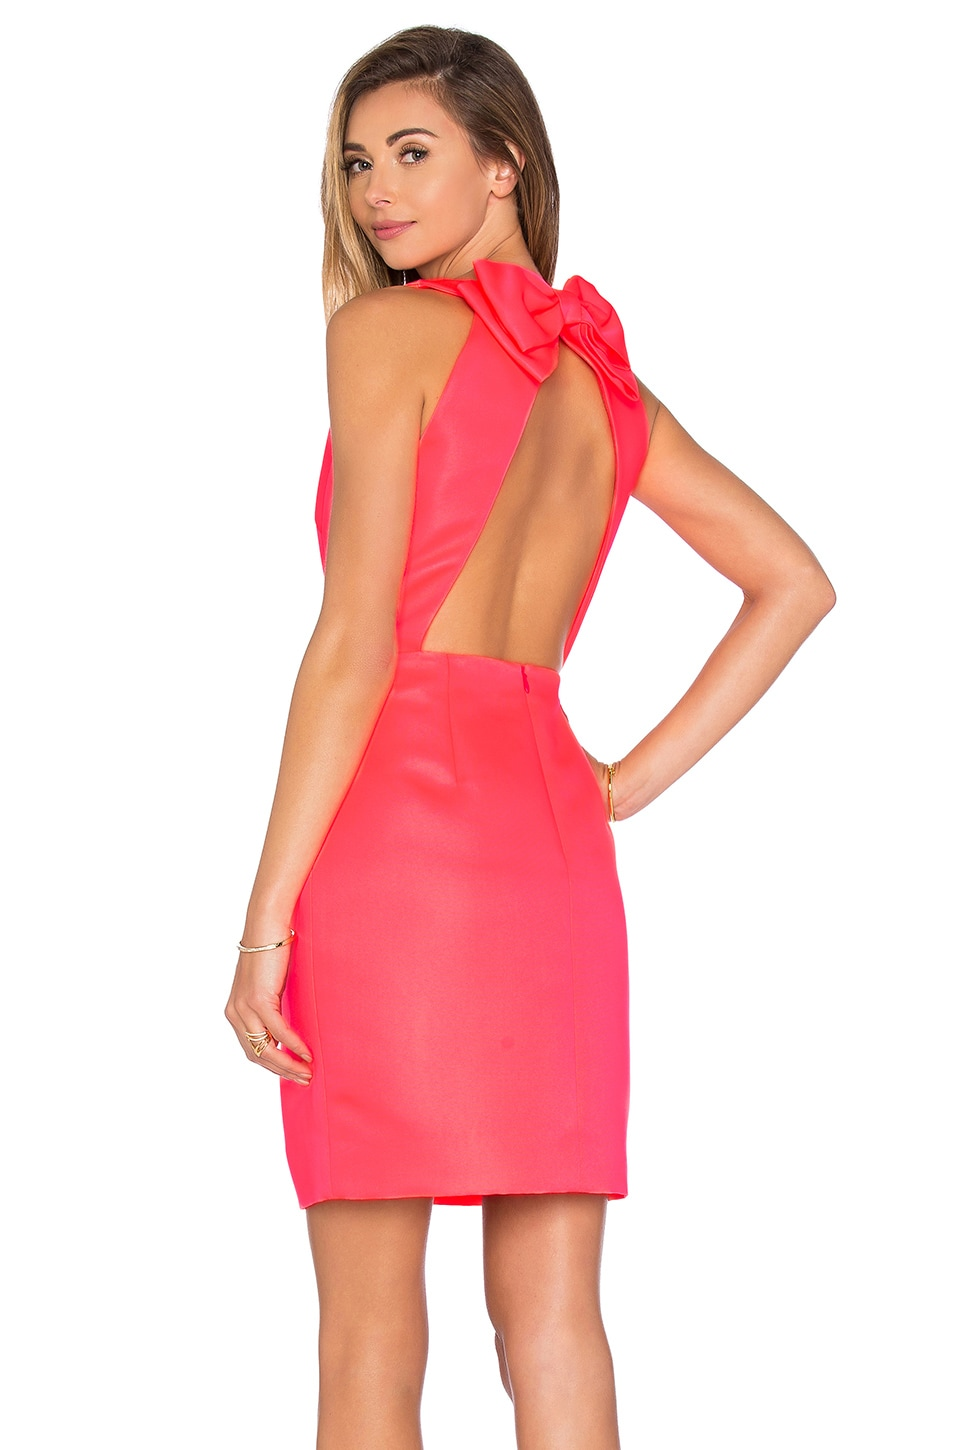 kate spade new york Bow Back Cupcake Dress in Surprise Coral